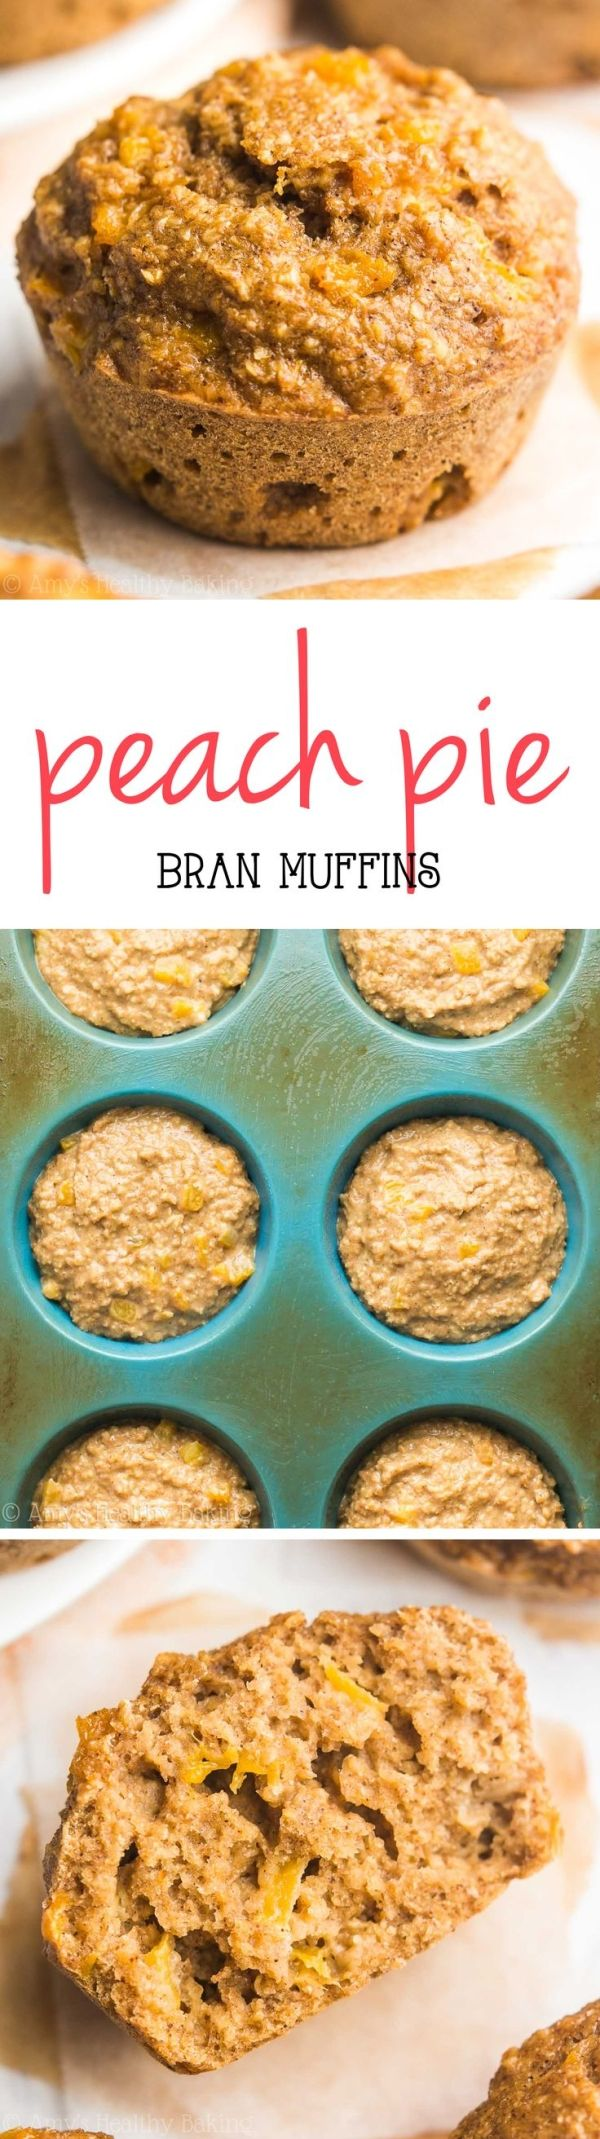 Healthy Peach Pie Bran Muffins -- such an easy, guilt-free recipe! Just 109 calories! My family called these the BEST bran muffins they've ever had! by emily